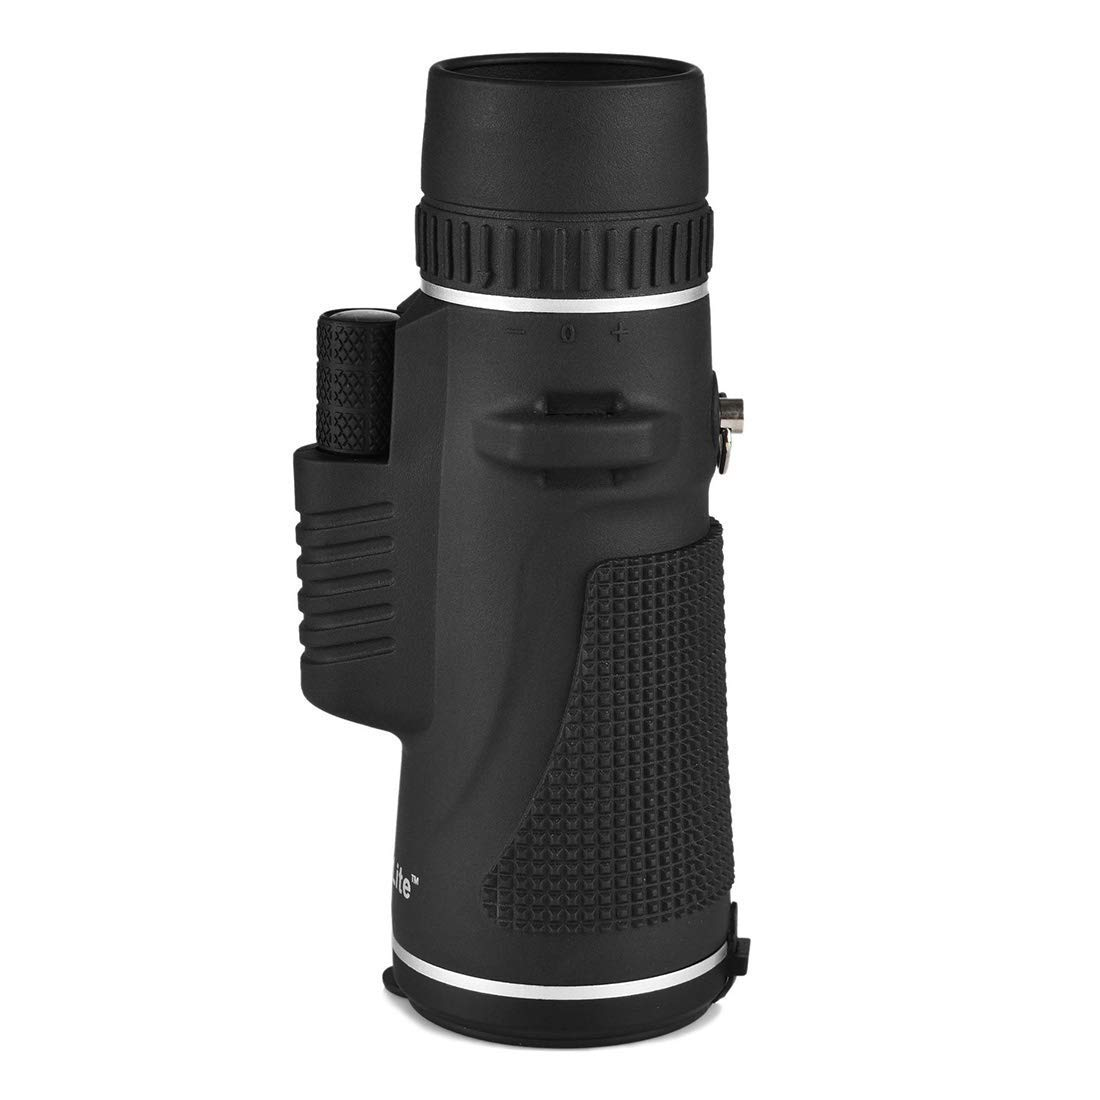 Outdoor Sports Discovery Equipment Monocular, Low Light Night Vision HD Without Infrared Camera, Suitable for Outdoor Viewing, Cellphone Fishing 35x50